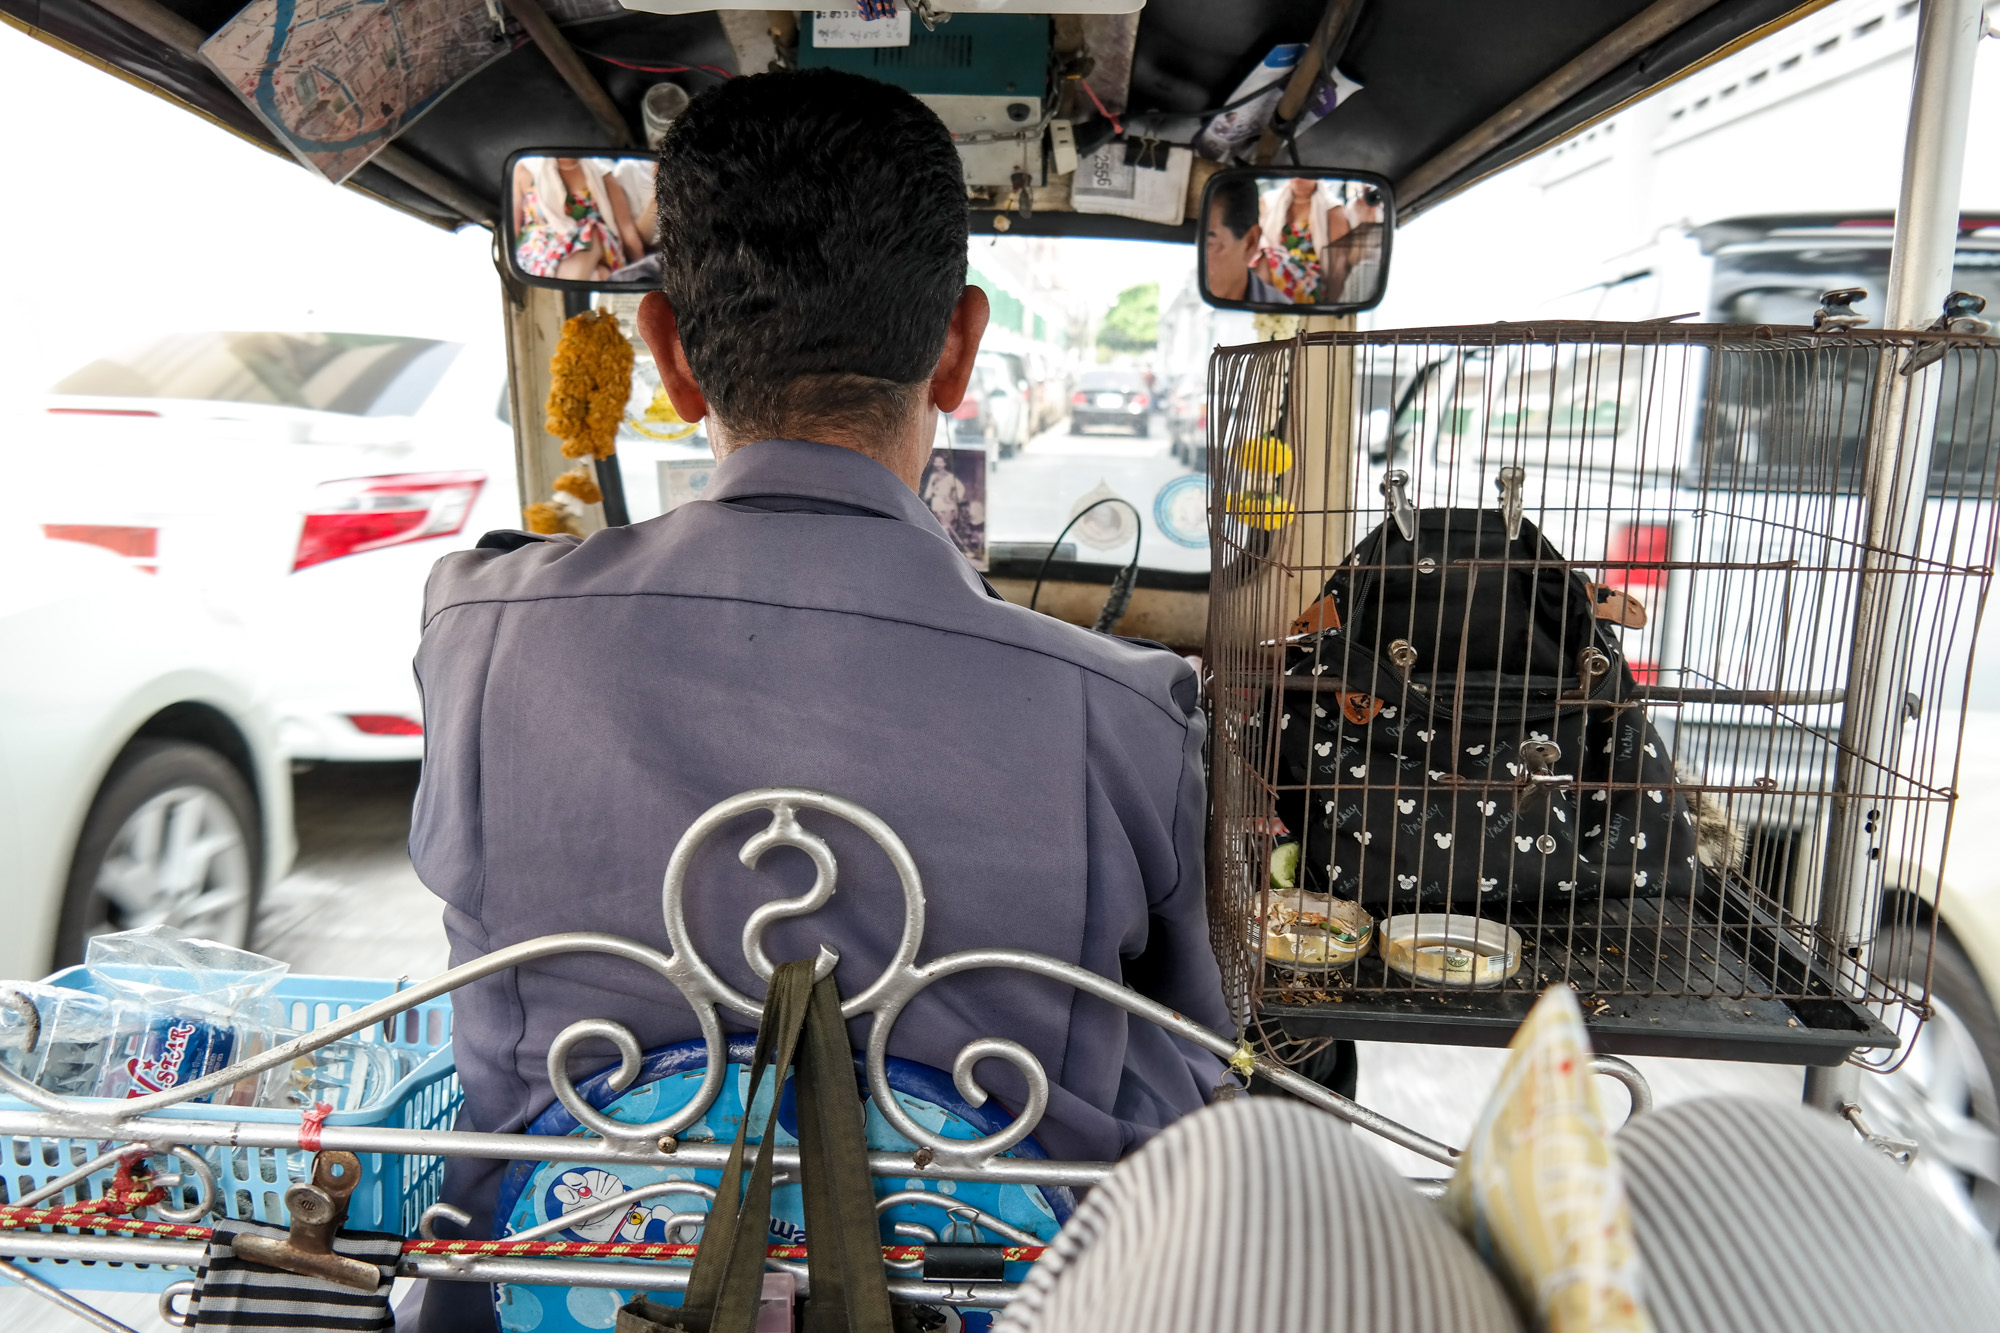 Driving with a tuk tuk was a major experience! Yes it seems very dangerous to Europeans, especially Swiss, but the traffic in Bangkok is crazy and without a small, maneuverable vehicle it would've been impossible to get to all the places we wanted to see.